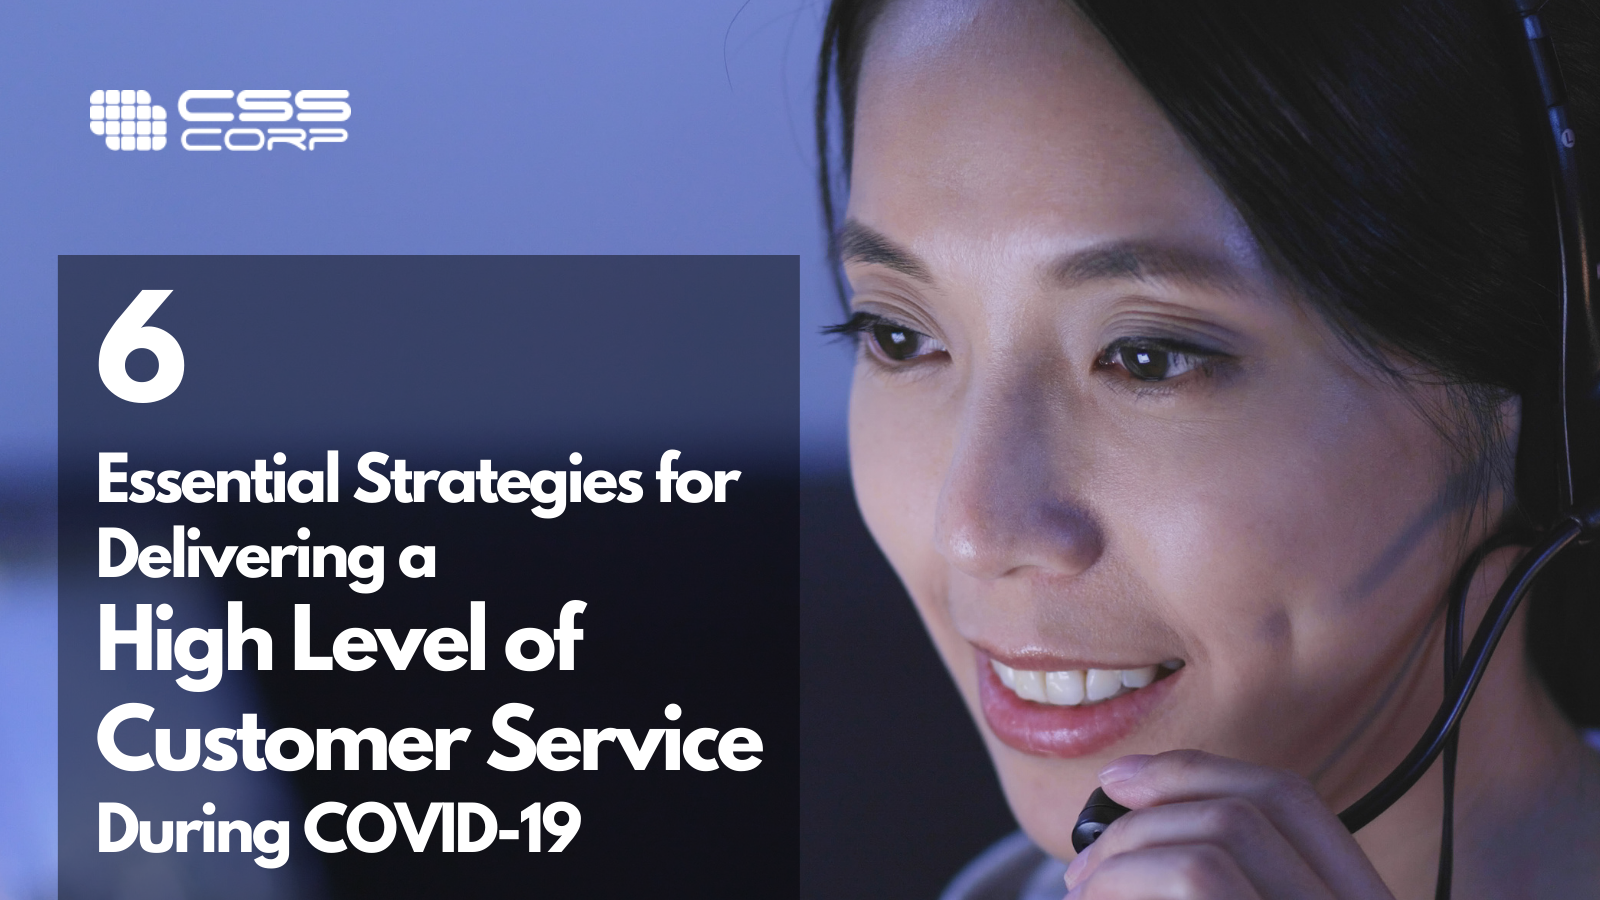 6 Strategies for Delivering a High Level of Customer Service During COVID-19